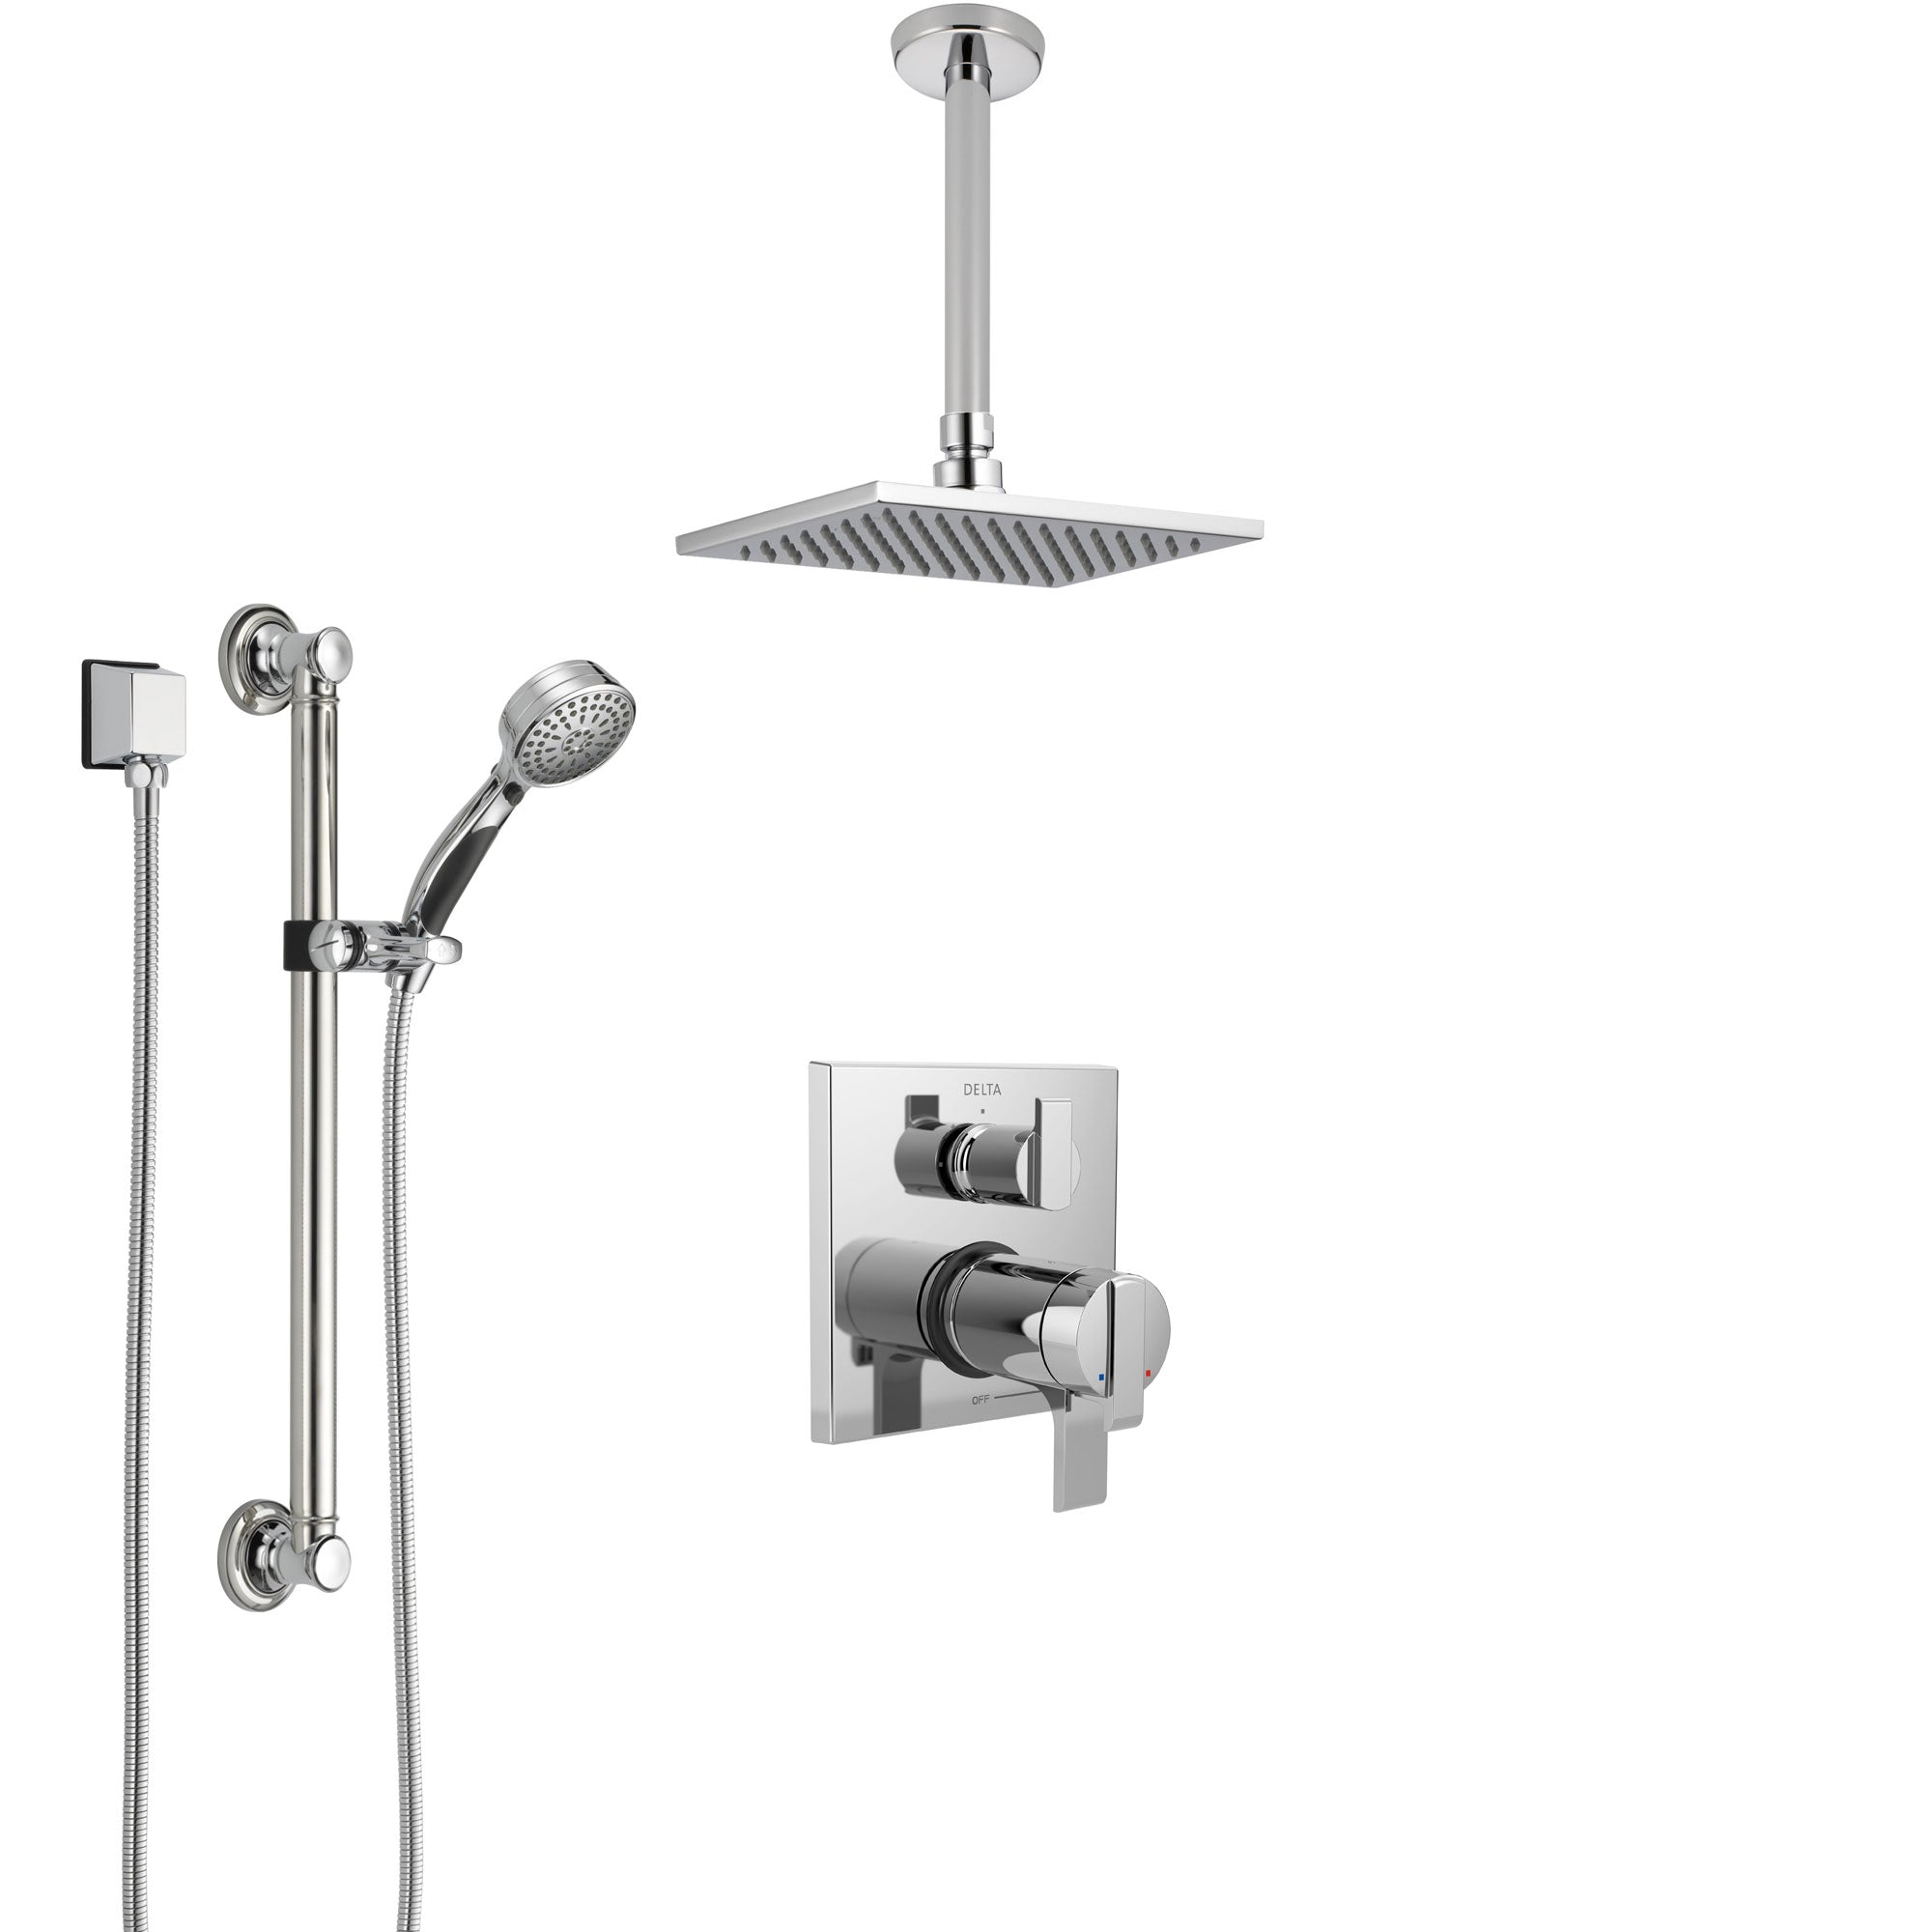 Delta Ara Chrome Integrated Diverter Shower System with Dual Thermostatic Control, Ceiling Mount Showerhead, and Hand Shower with Grab Bar SS27T8679